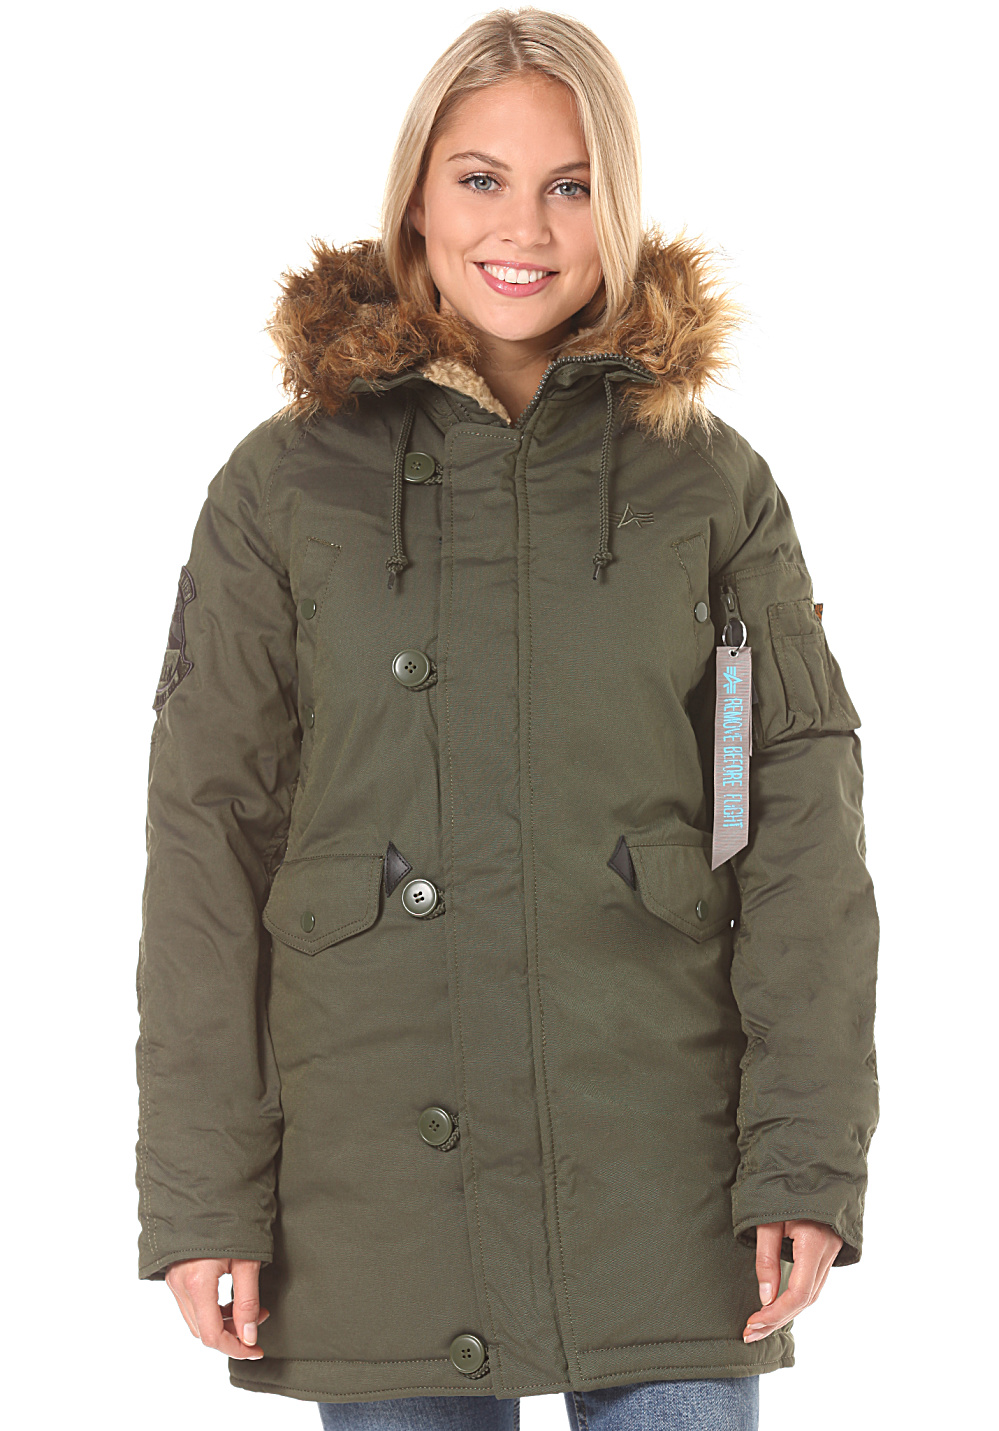 super popular 47f4b 820ff ALPHA INDUSTRIES Explorer - Jacket for Women - Green